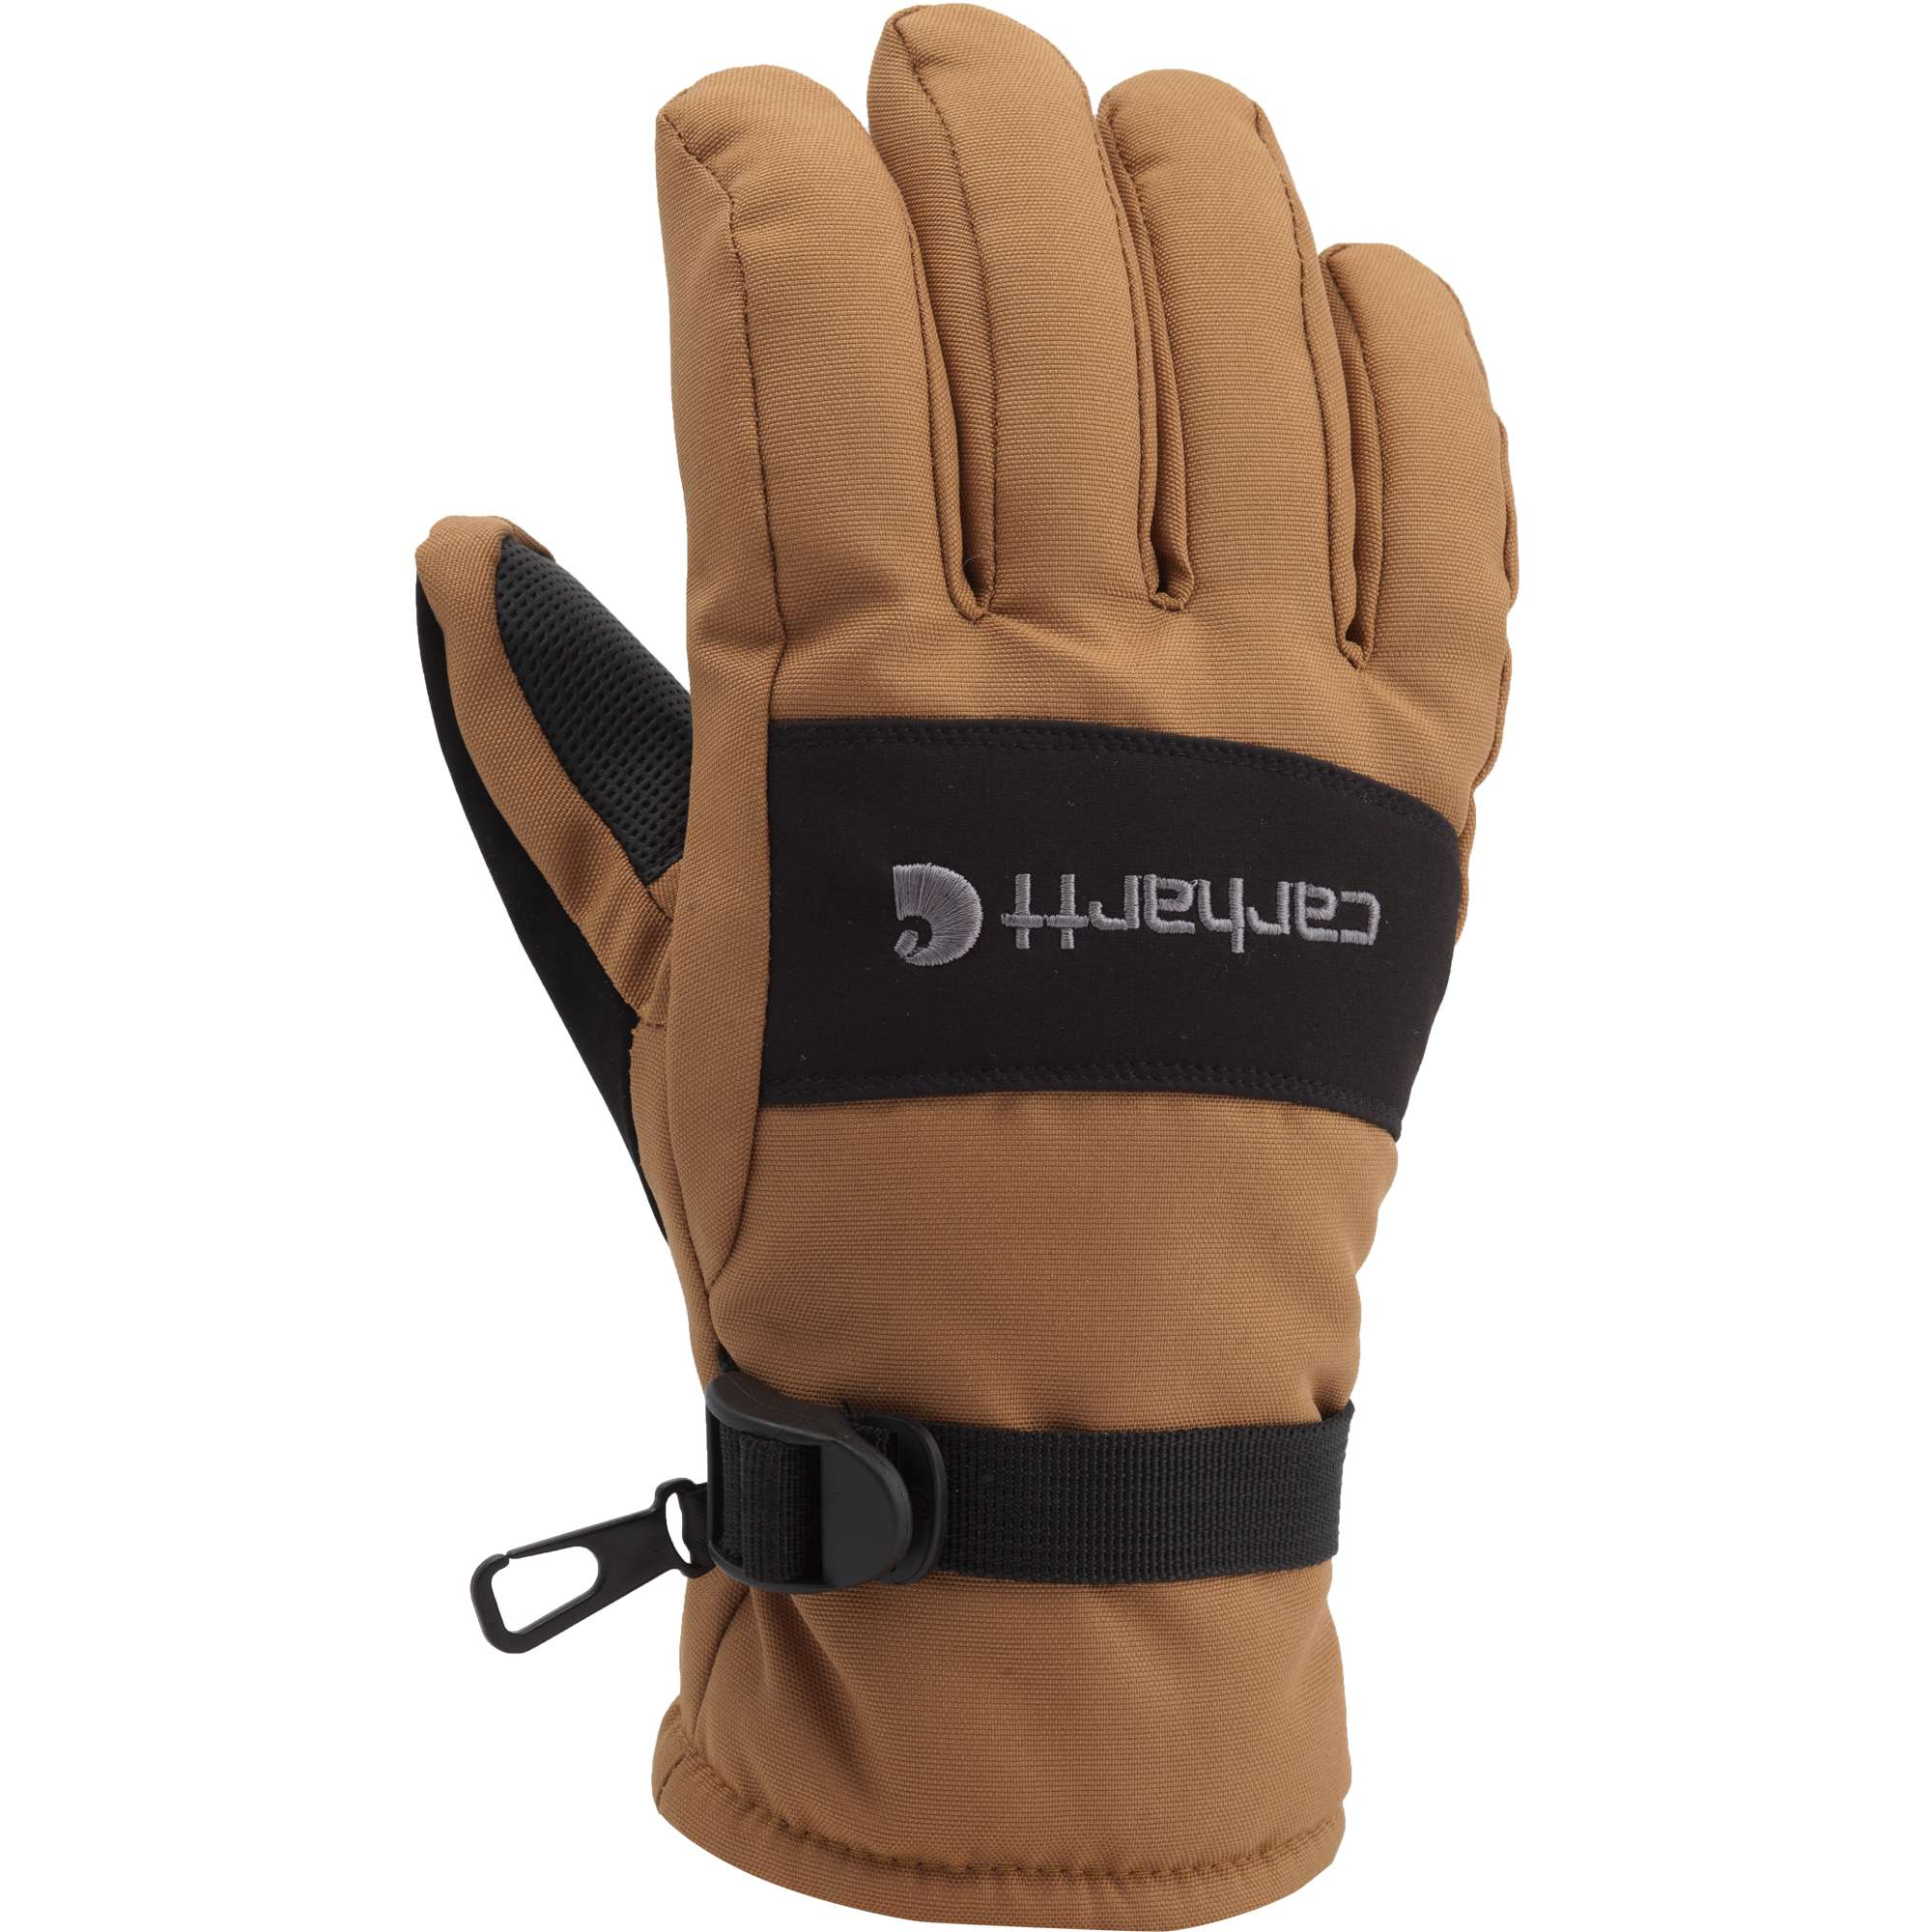 Outdoor Research Meteor Mitts Reviews